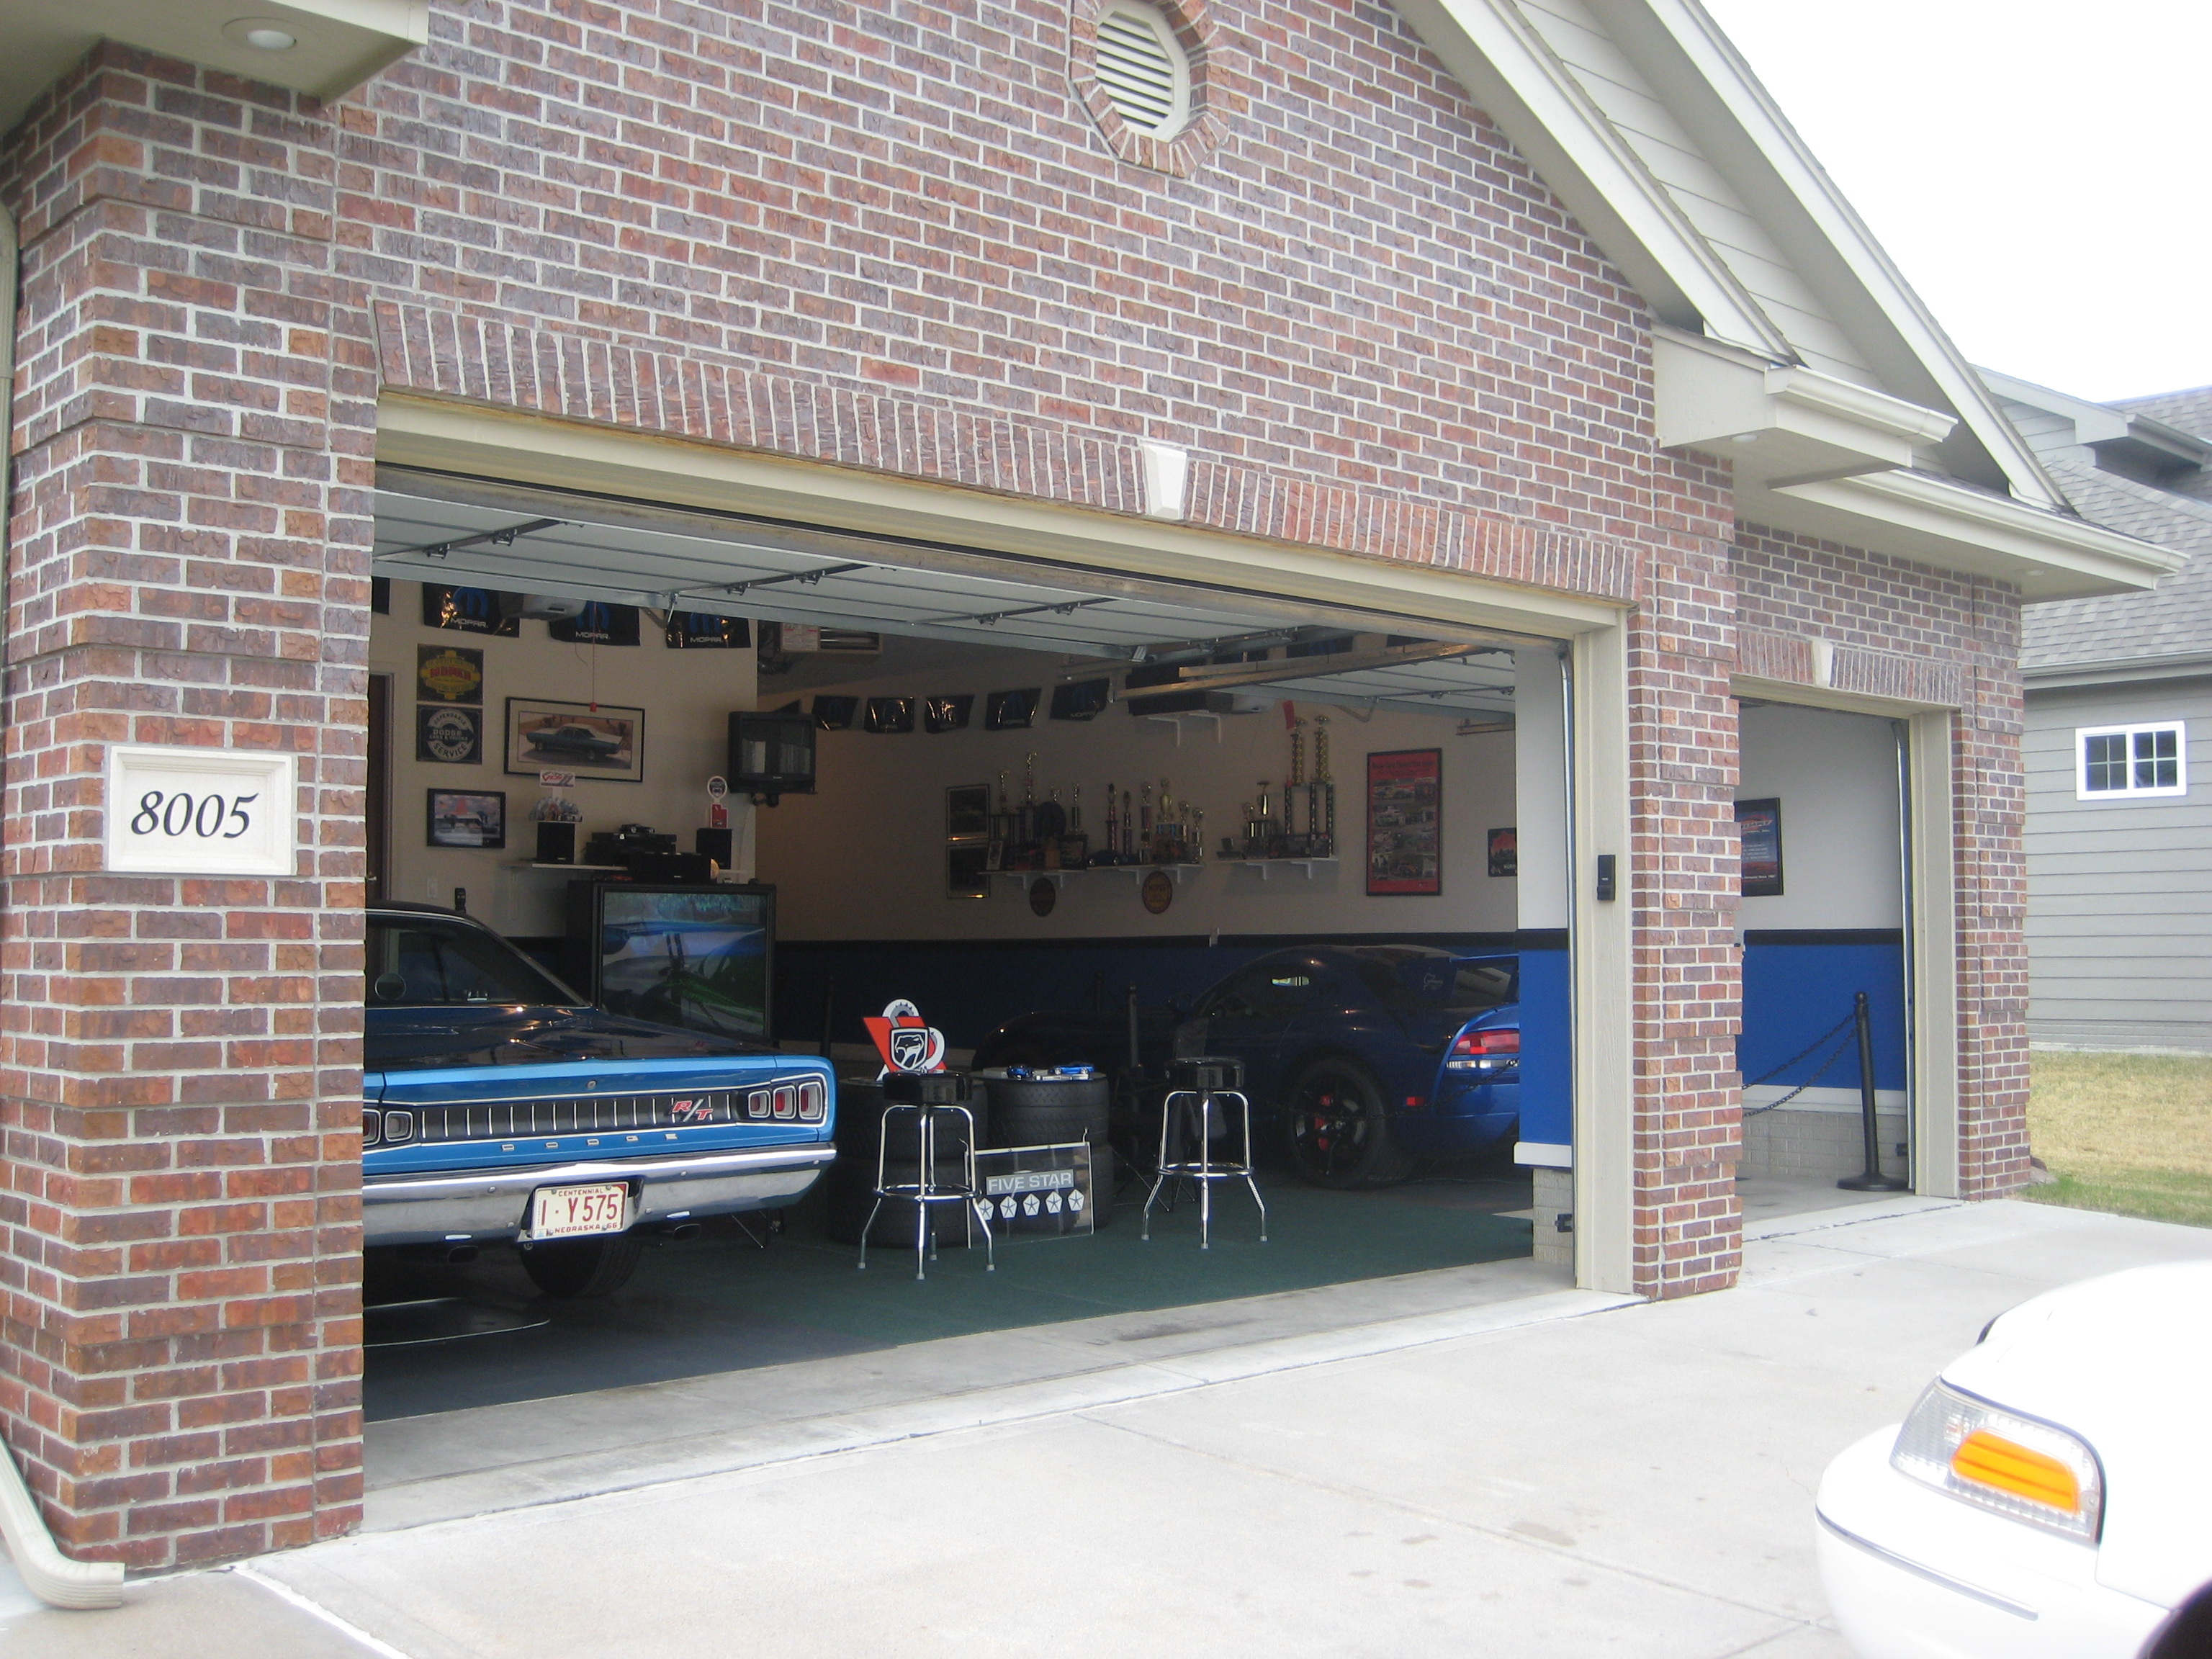 Man Cave Above Garage : High impact performance mopar auto club bruce s man cave